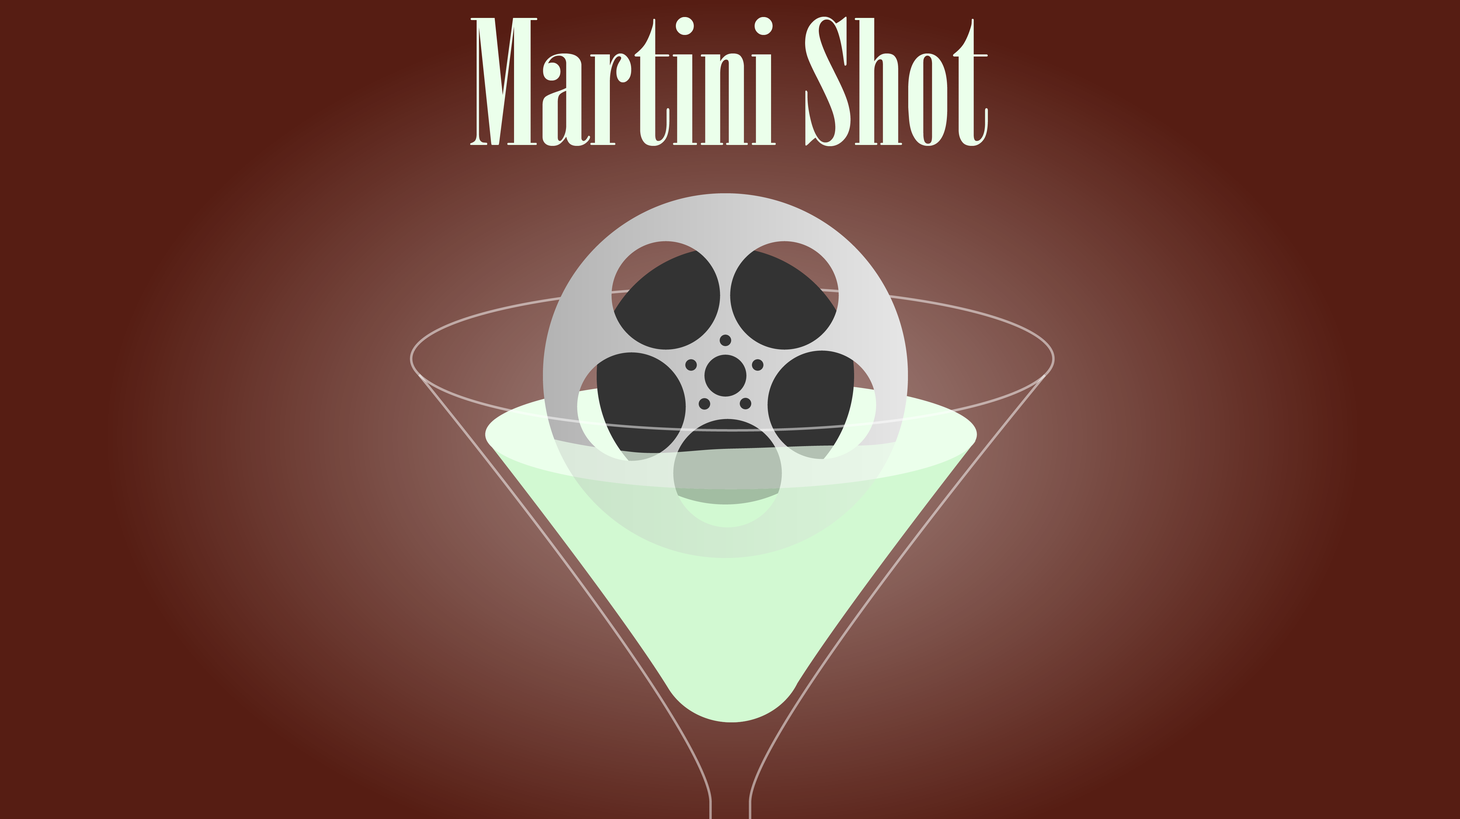 This is Rob Long and on today's Martini Shot I talk about the time I was in Gori, Georgia and I sat in Stalin's old reading chair and it was pretty weird, and then I twist that into an analogy about the entertainment business, as I usually do.